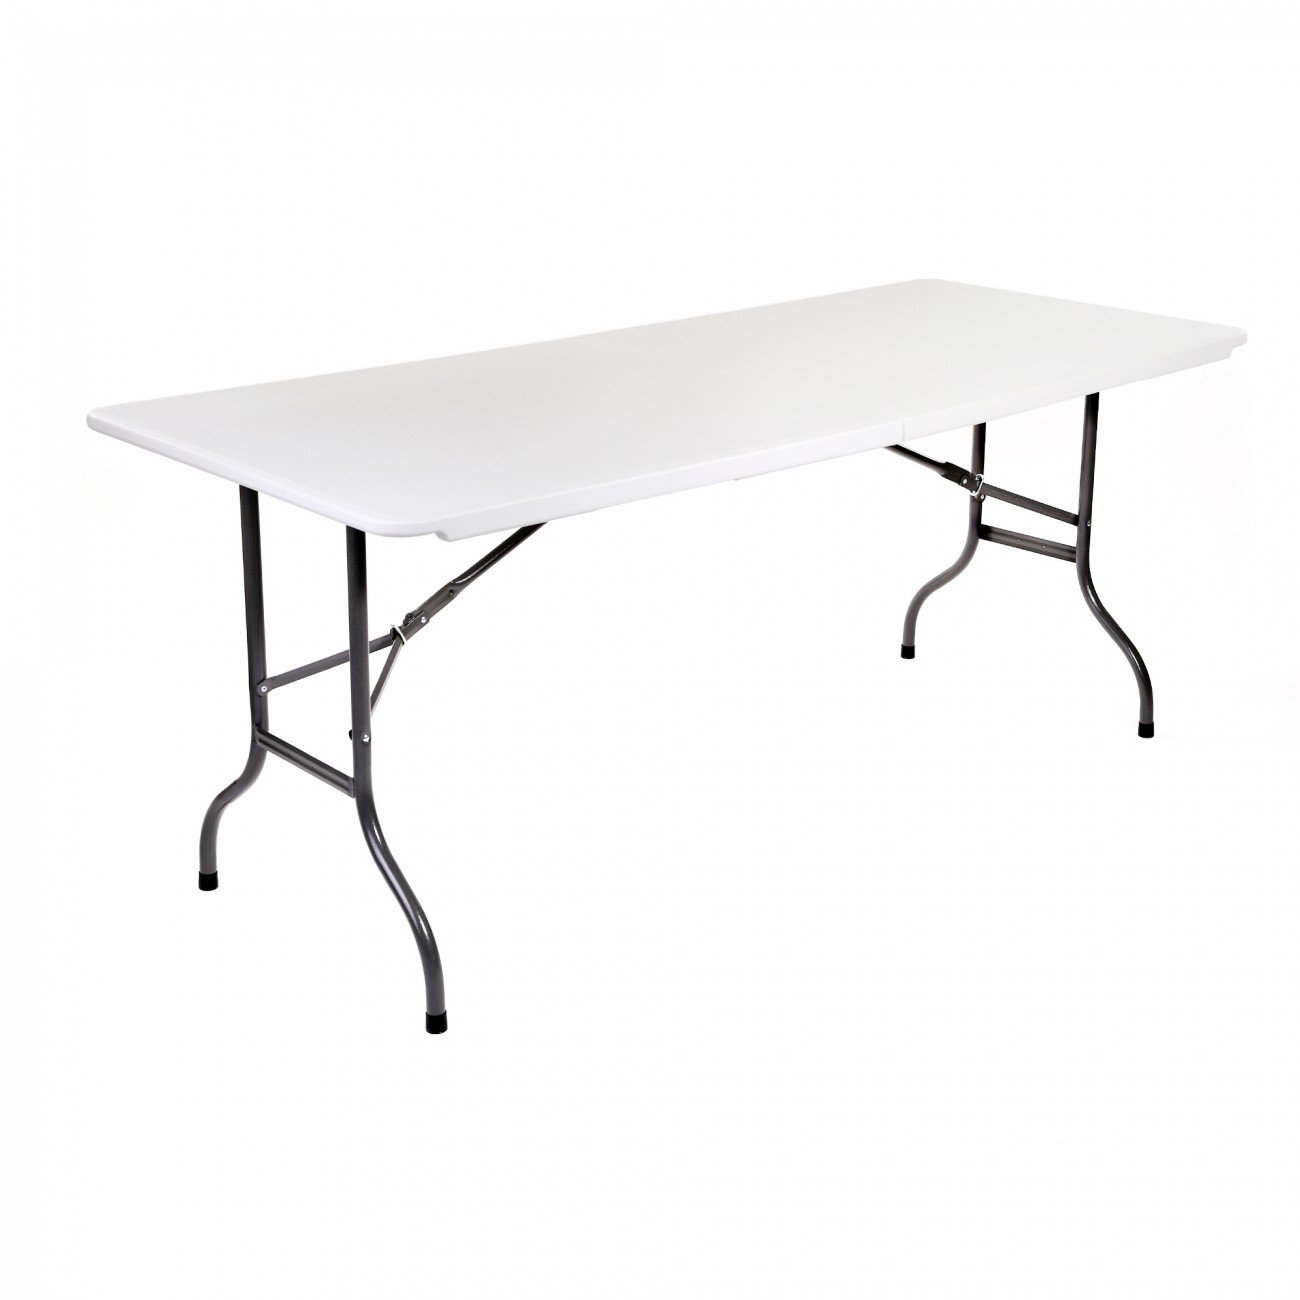 pied escamotable pour table good pied pliant pour table. Black Bedroom Furniture Sets. Home Design Ideas